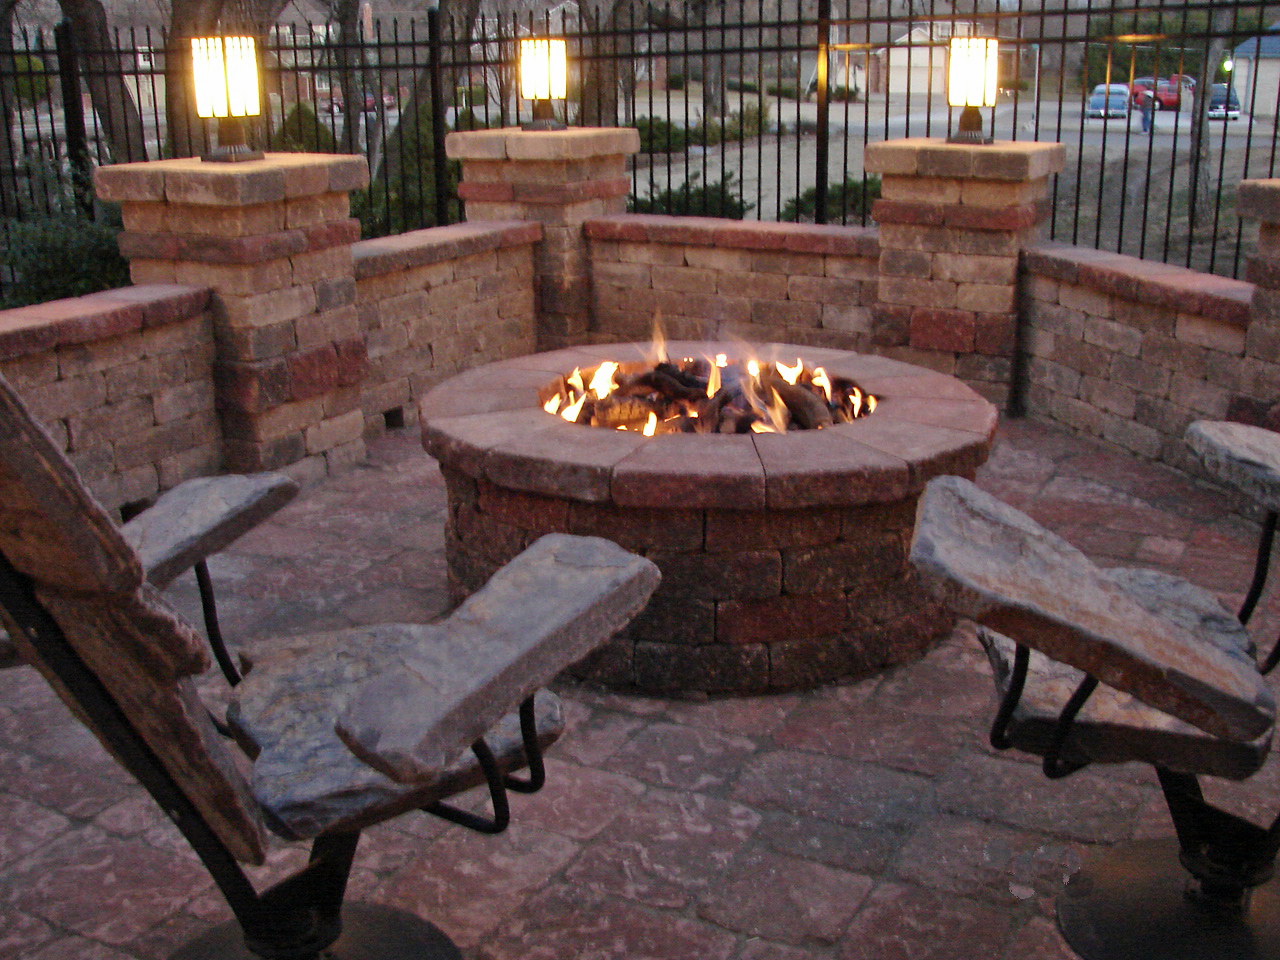 Chairs Around Fire Pit Fire Pit Furniture Stone2furniture Outdoor Furniture